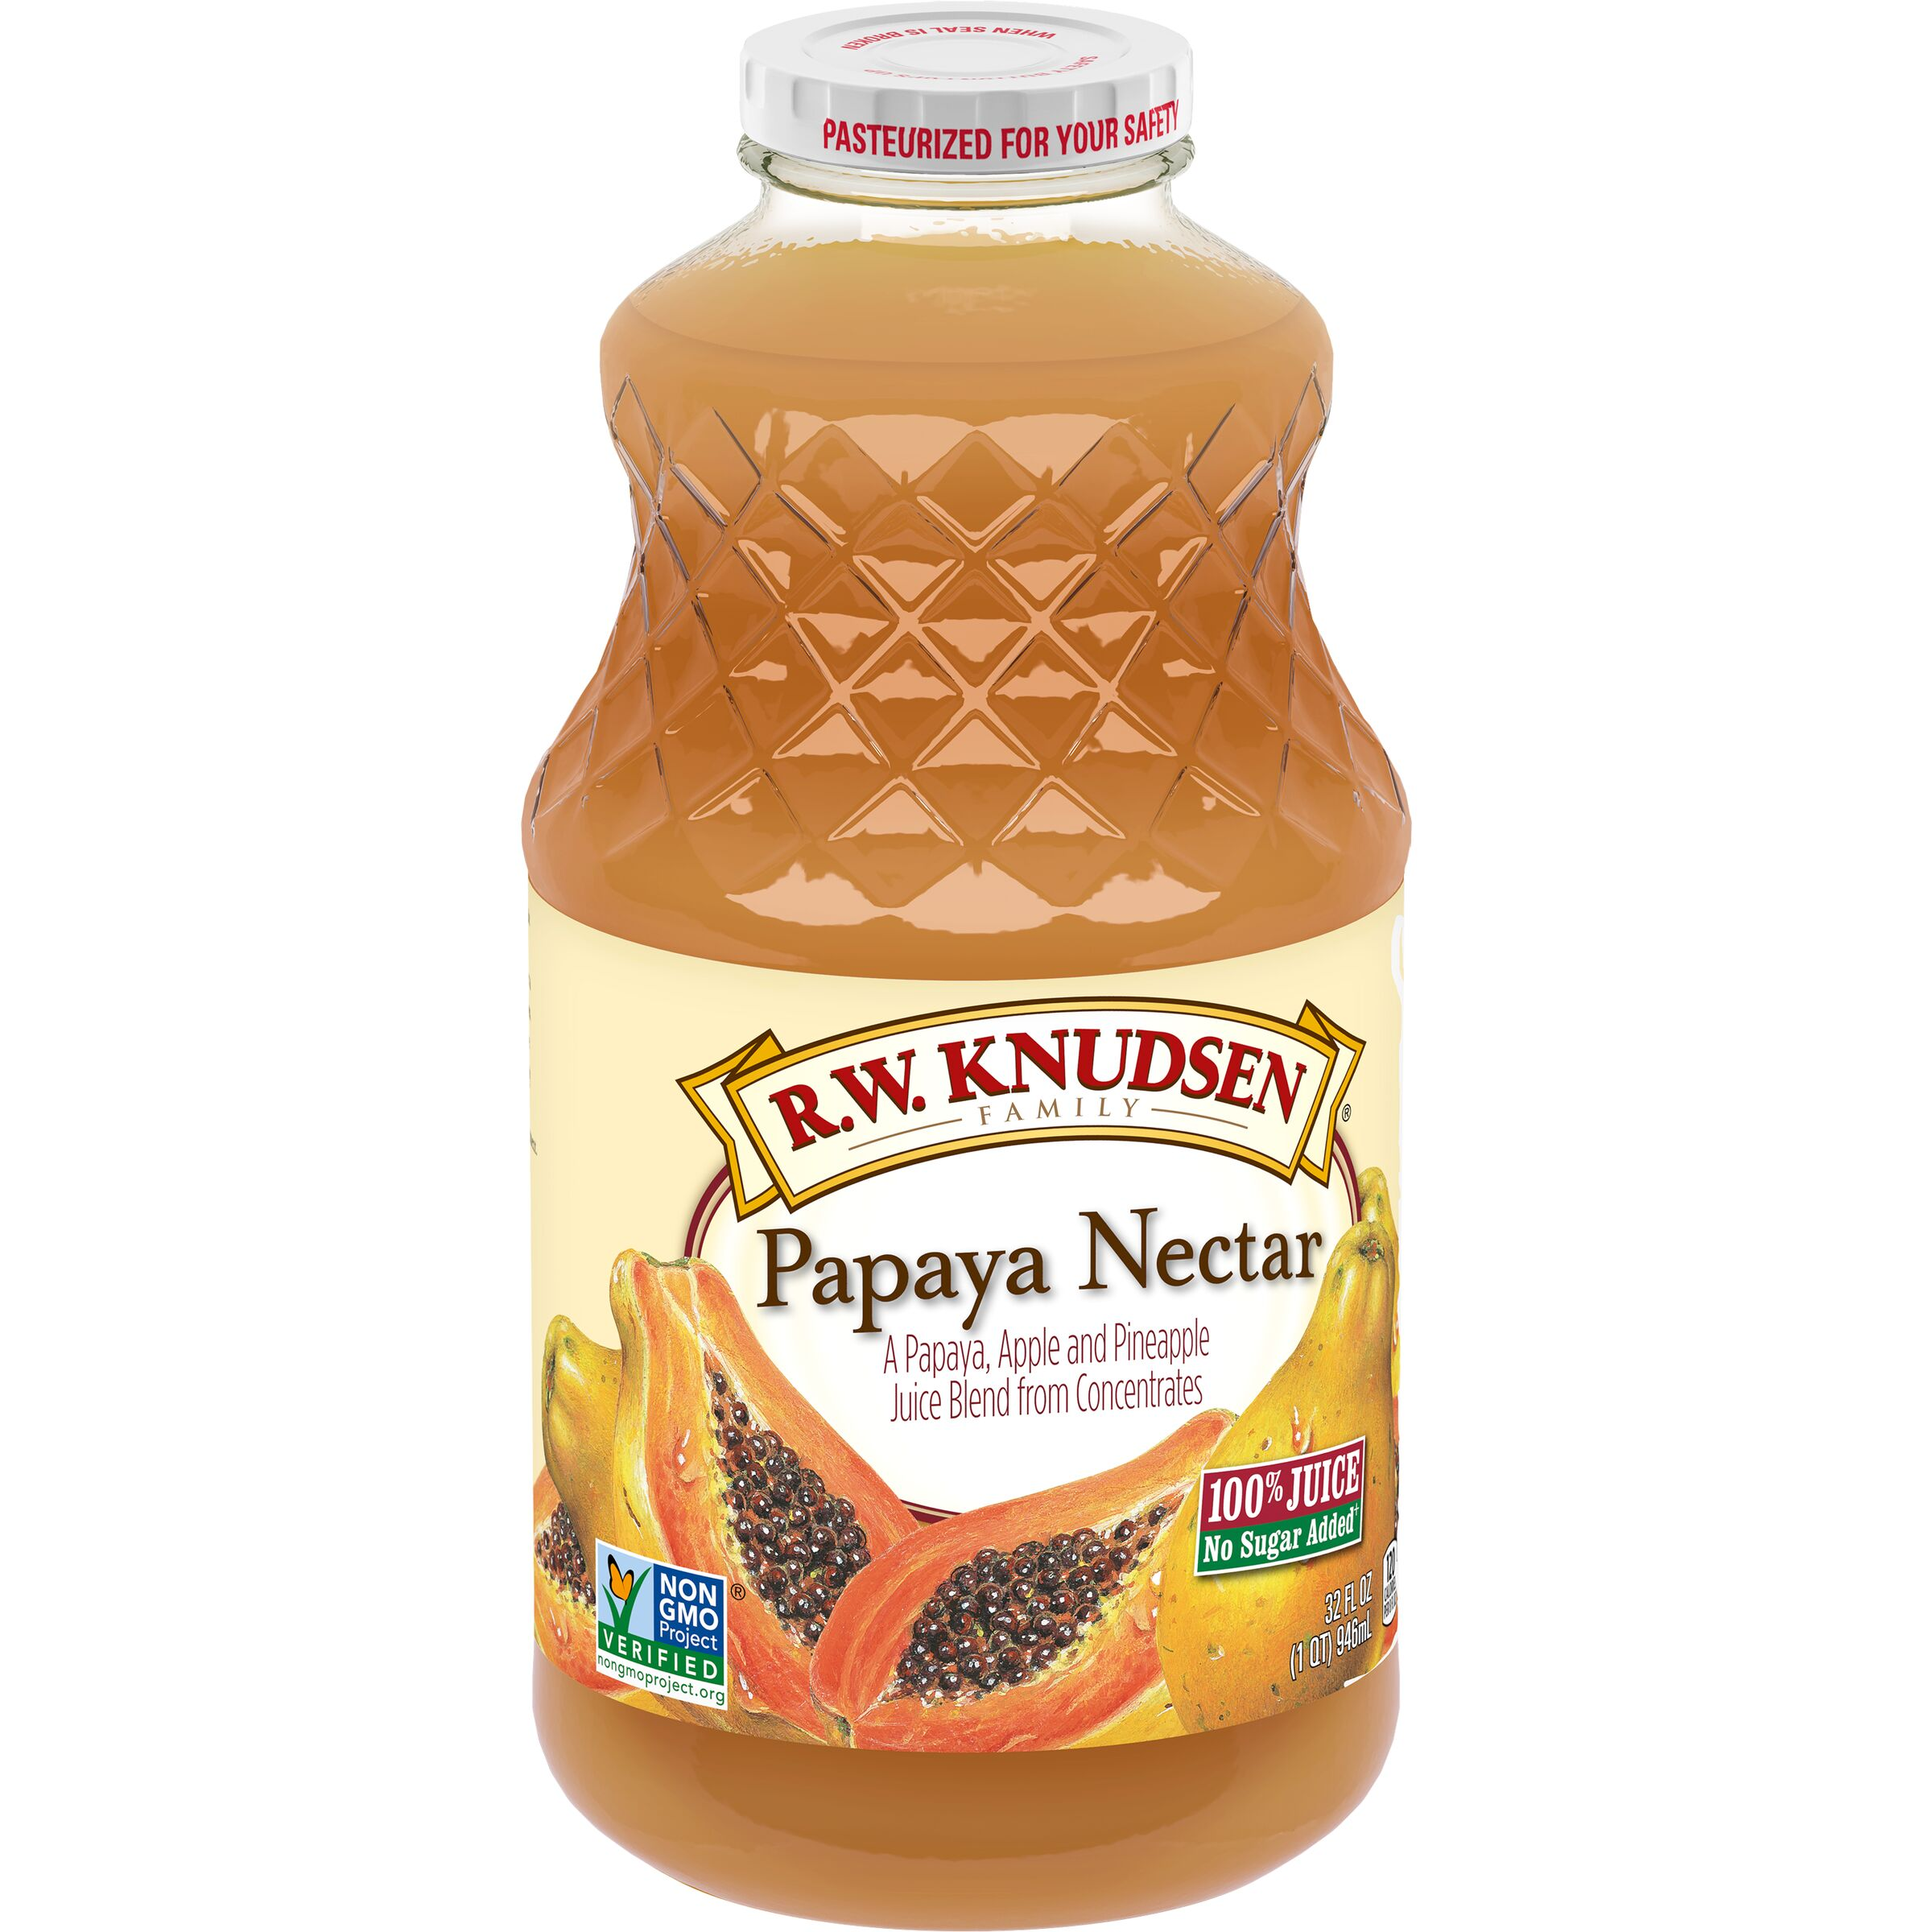 R.W. Knudsen Family  Papaya Nectar Juice